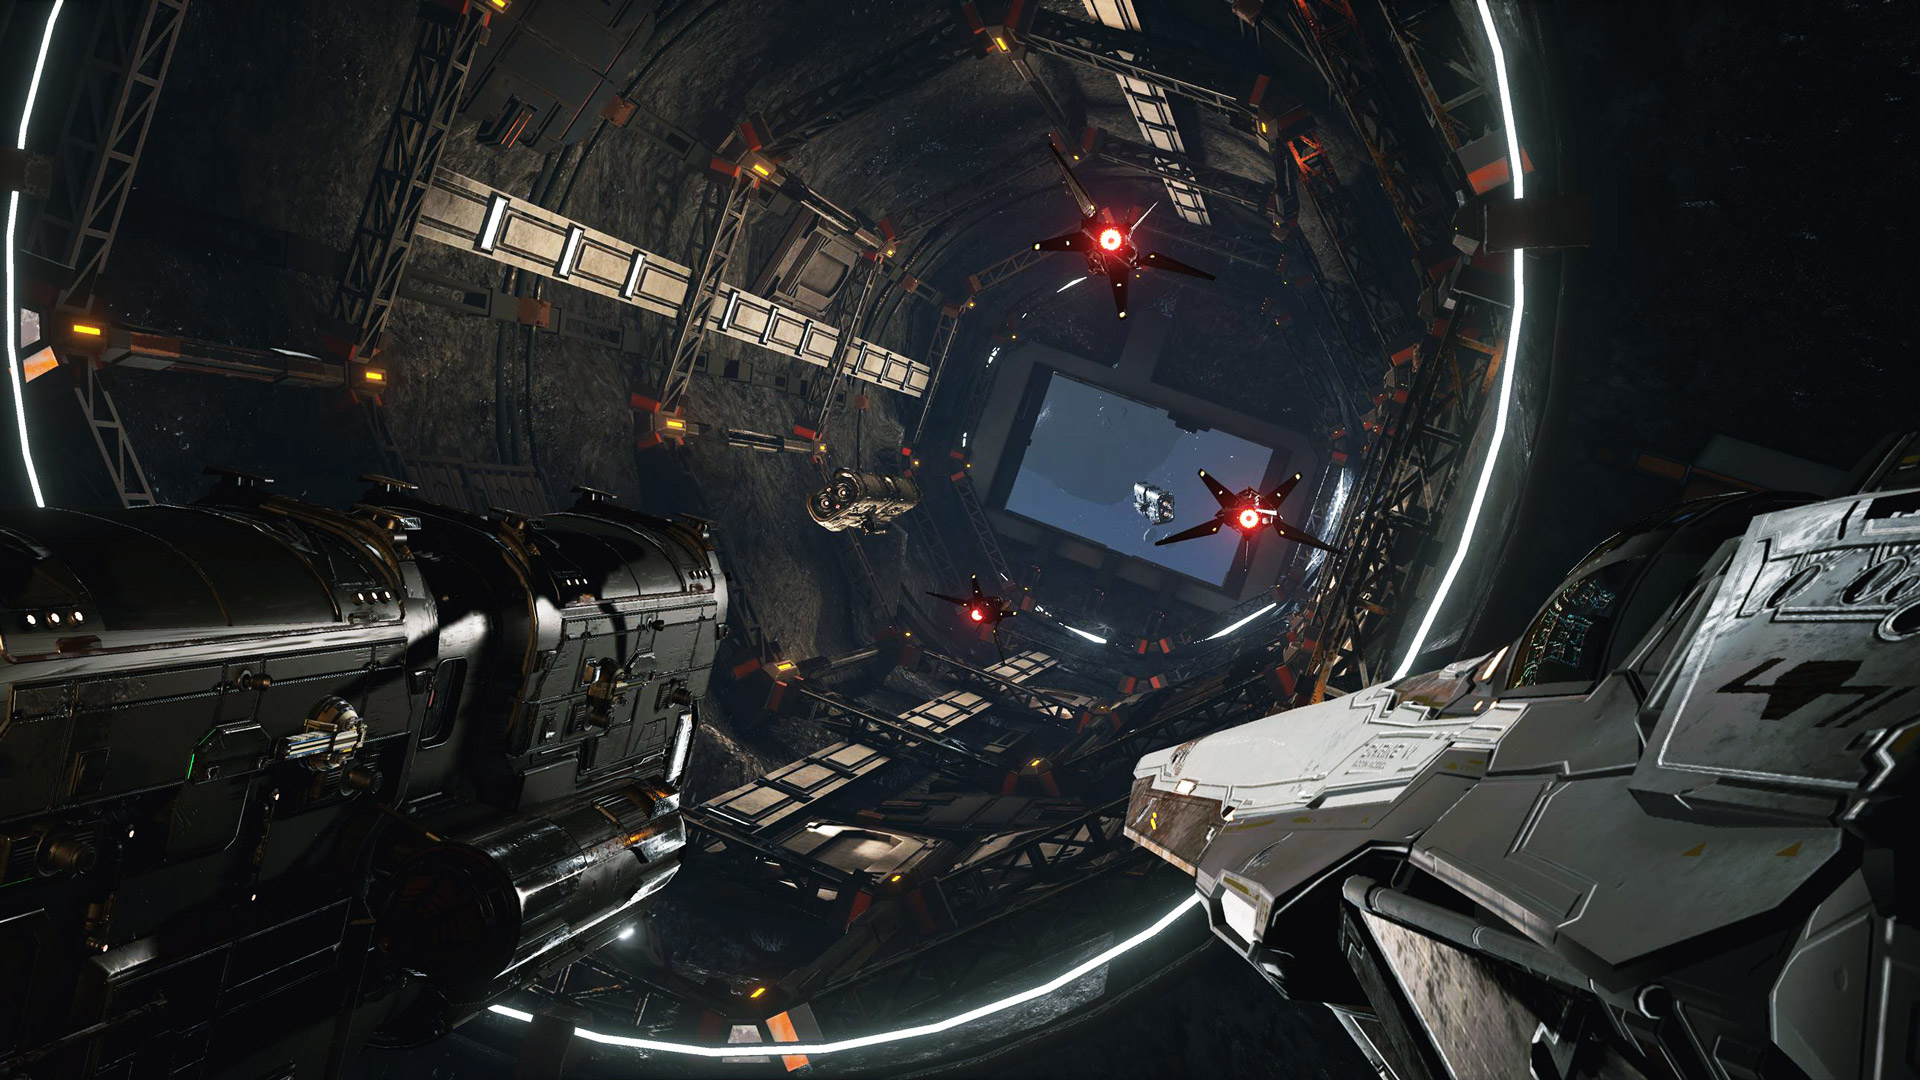 Starfighter Inc ' Promises VR Space Combat Sim Built on a Hard Sci